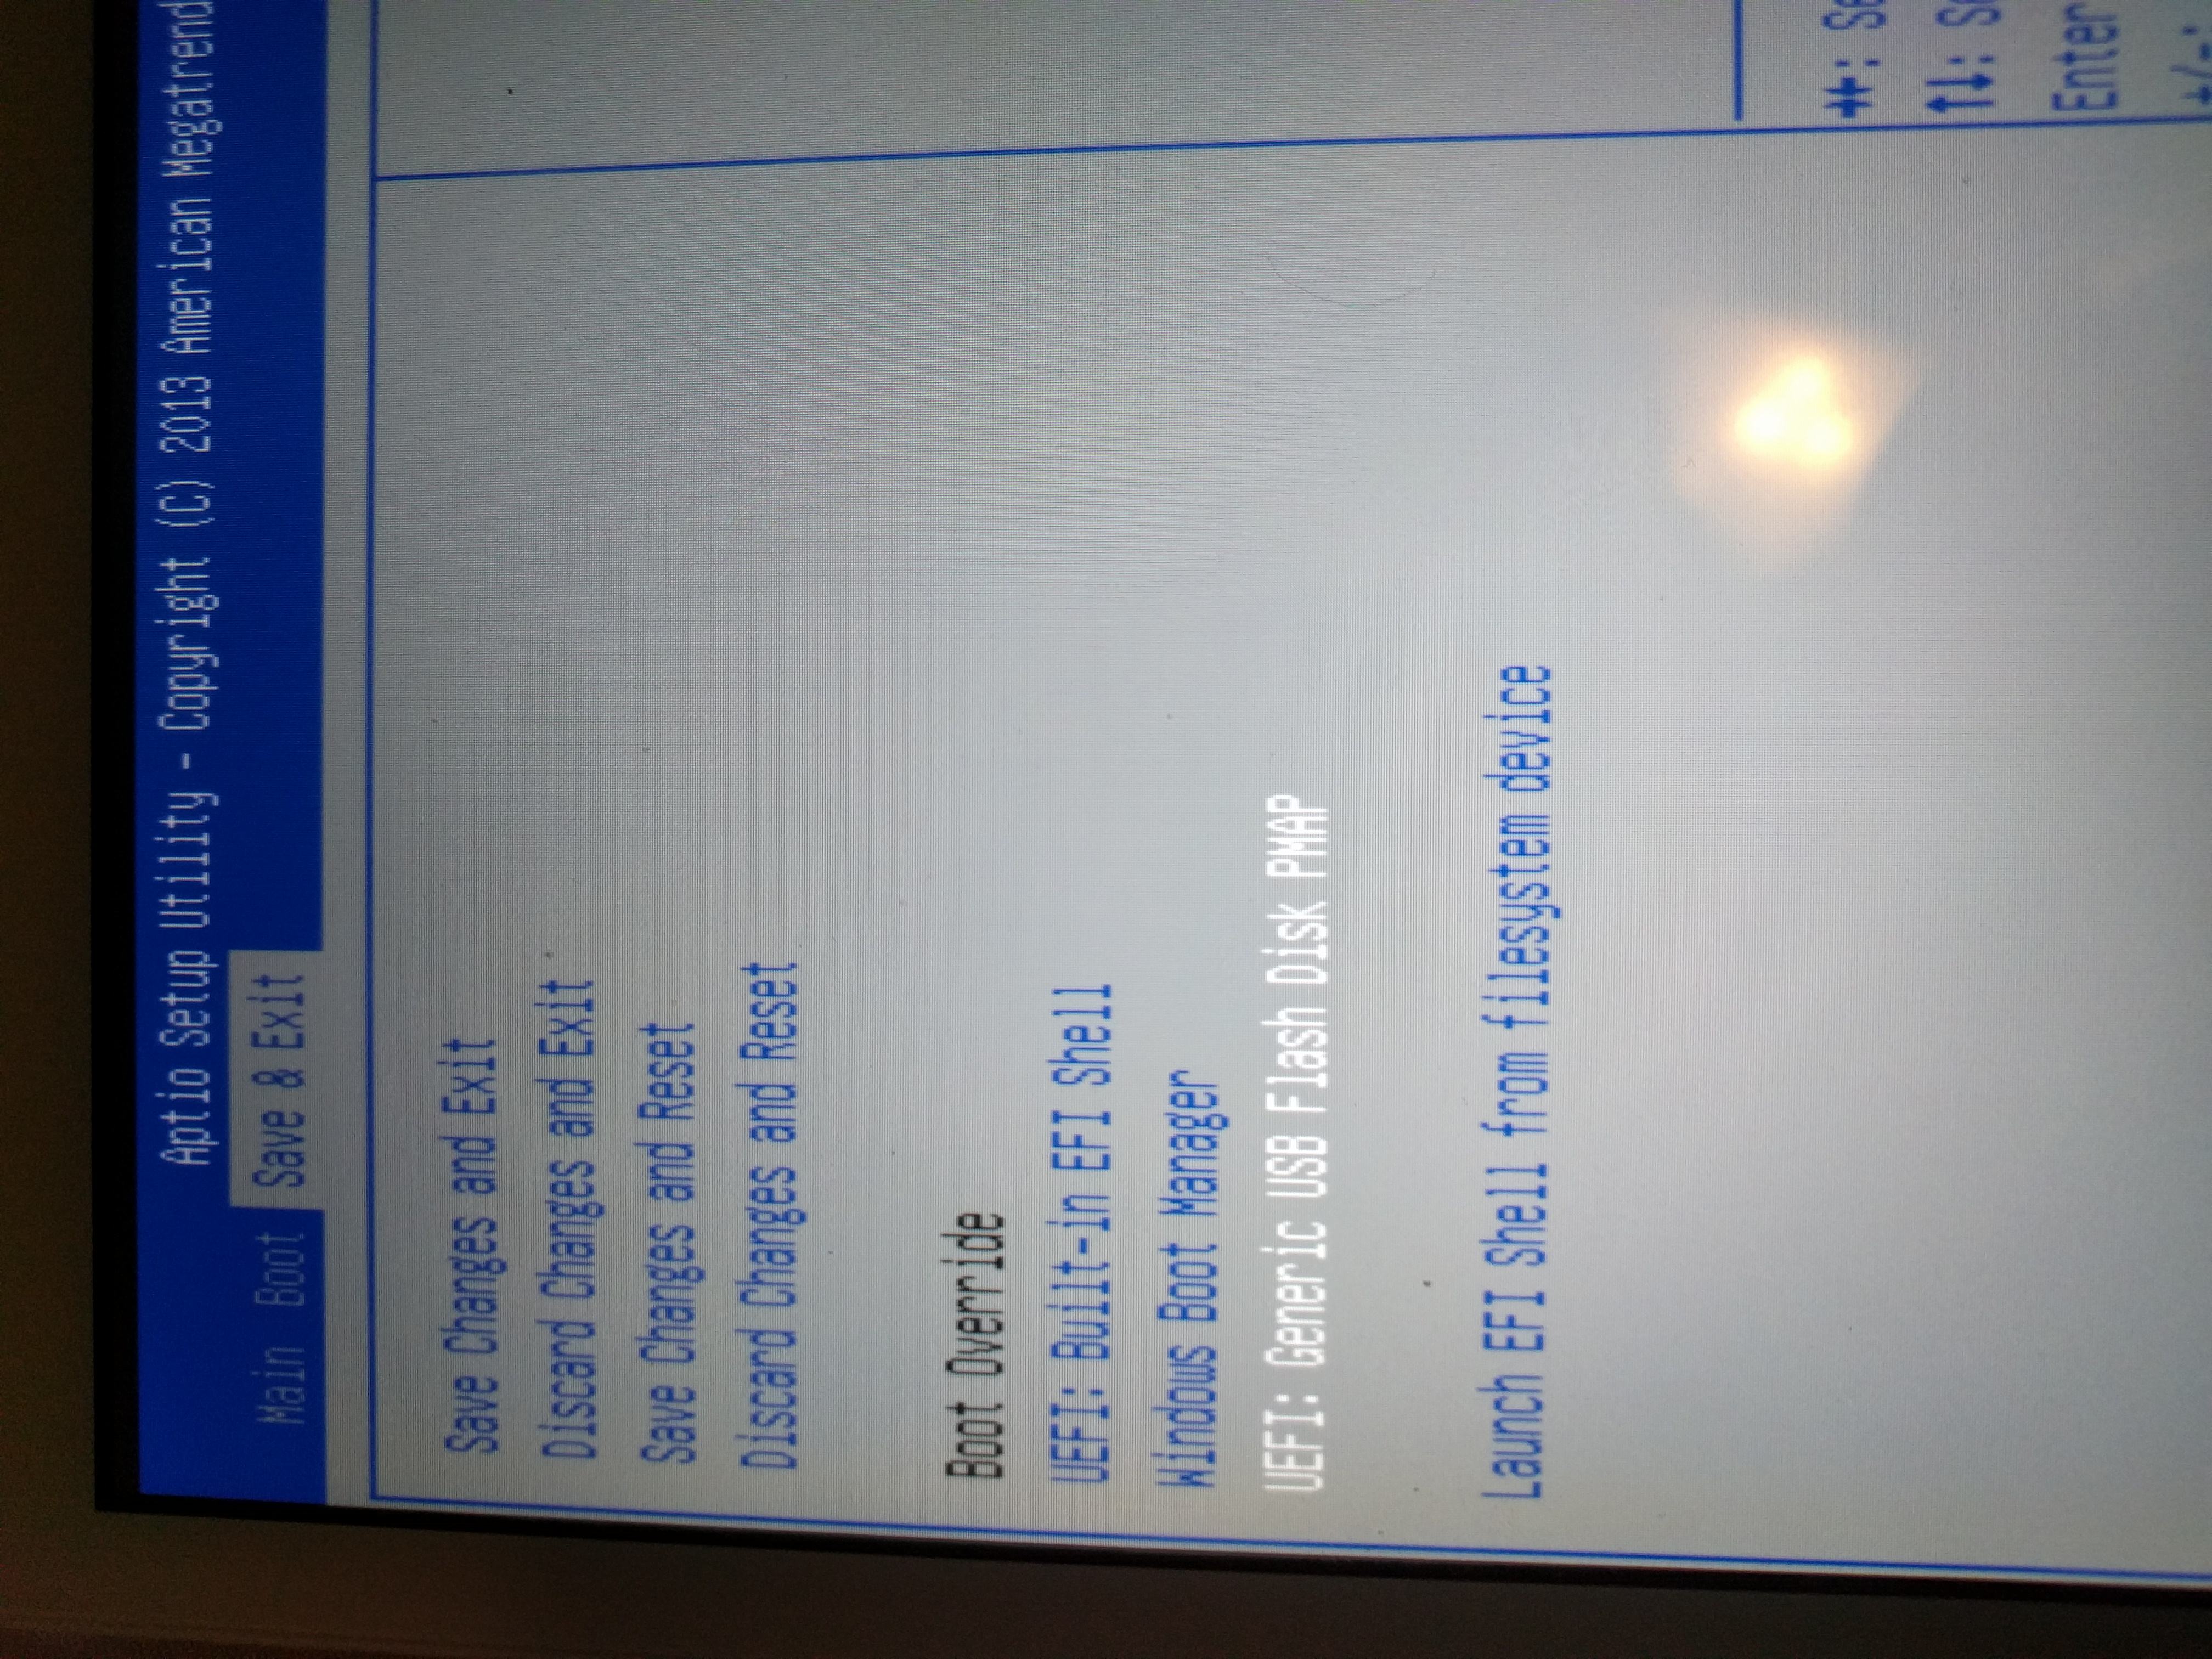 Help me fix a derped windows tablet! Corrupted OS? - Windows